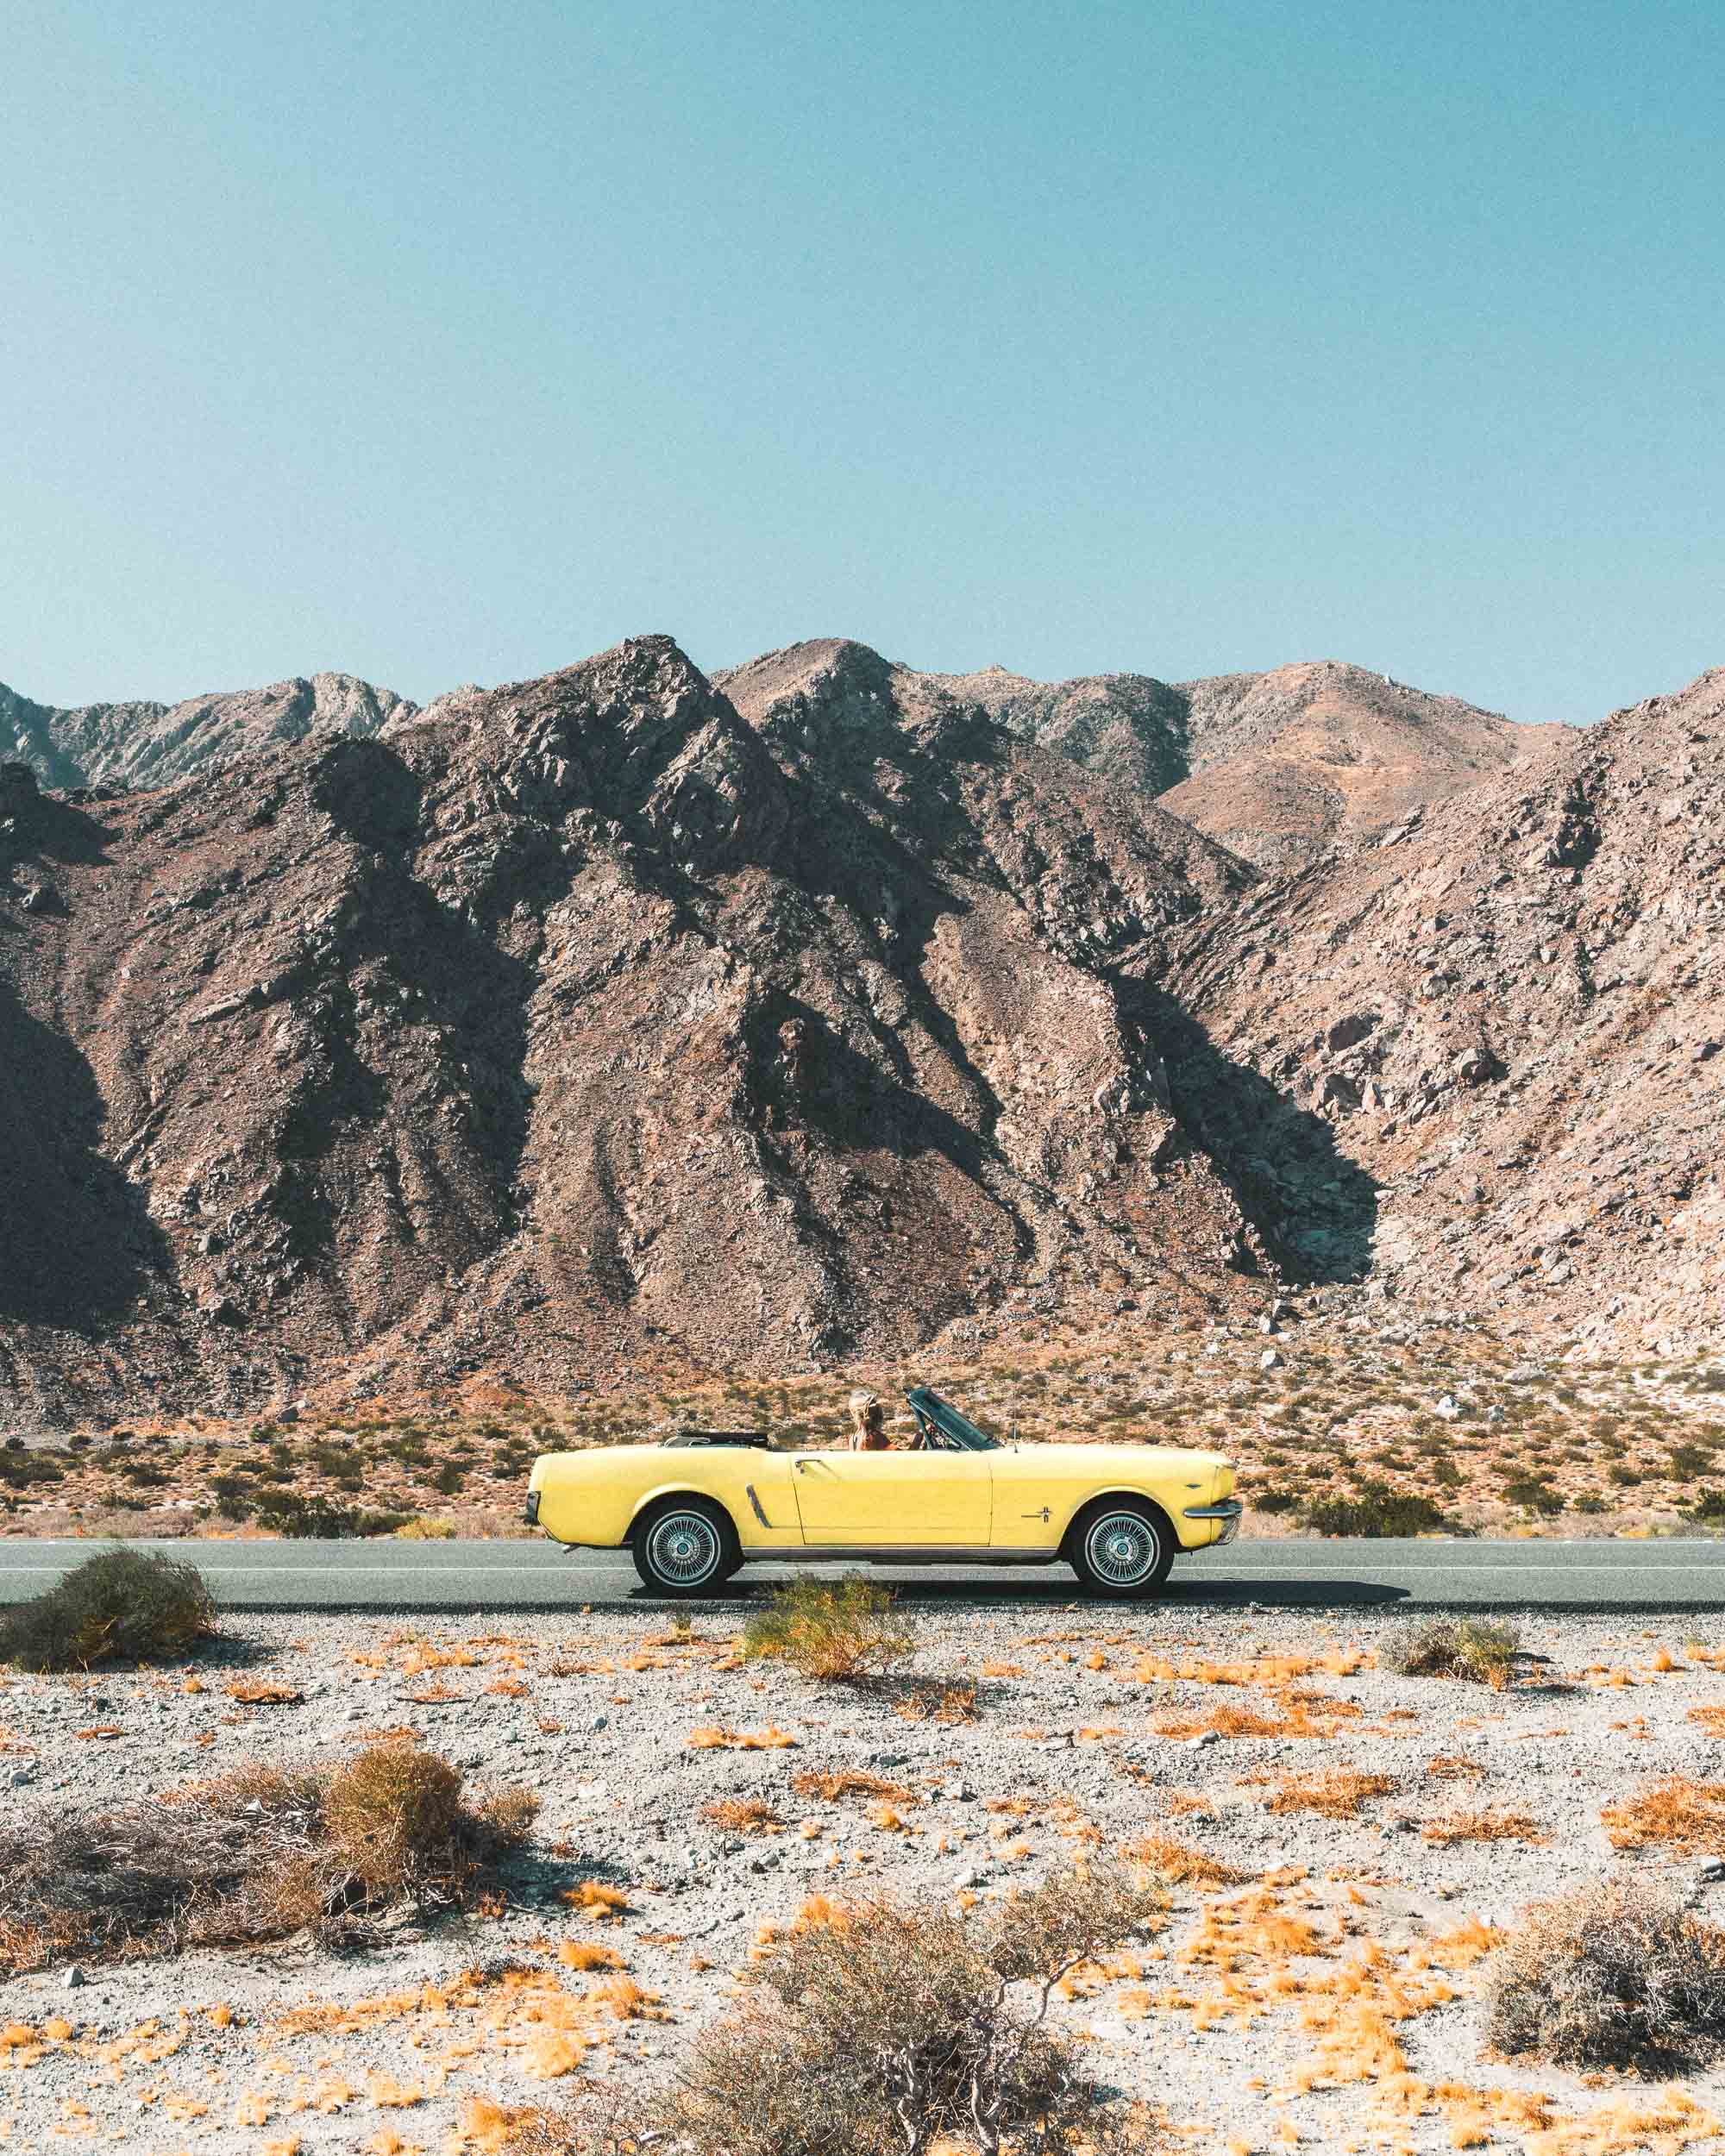 Vintage yellow car in the desert of Palm Springs California Find Us Lost